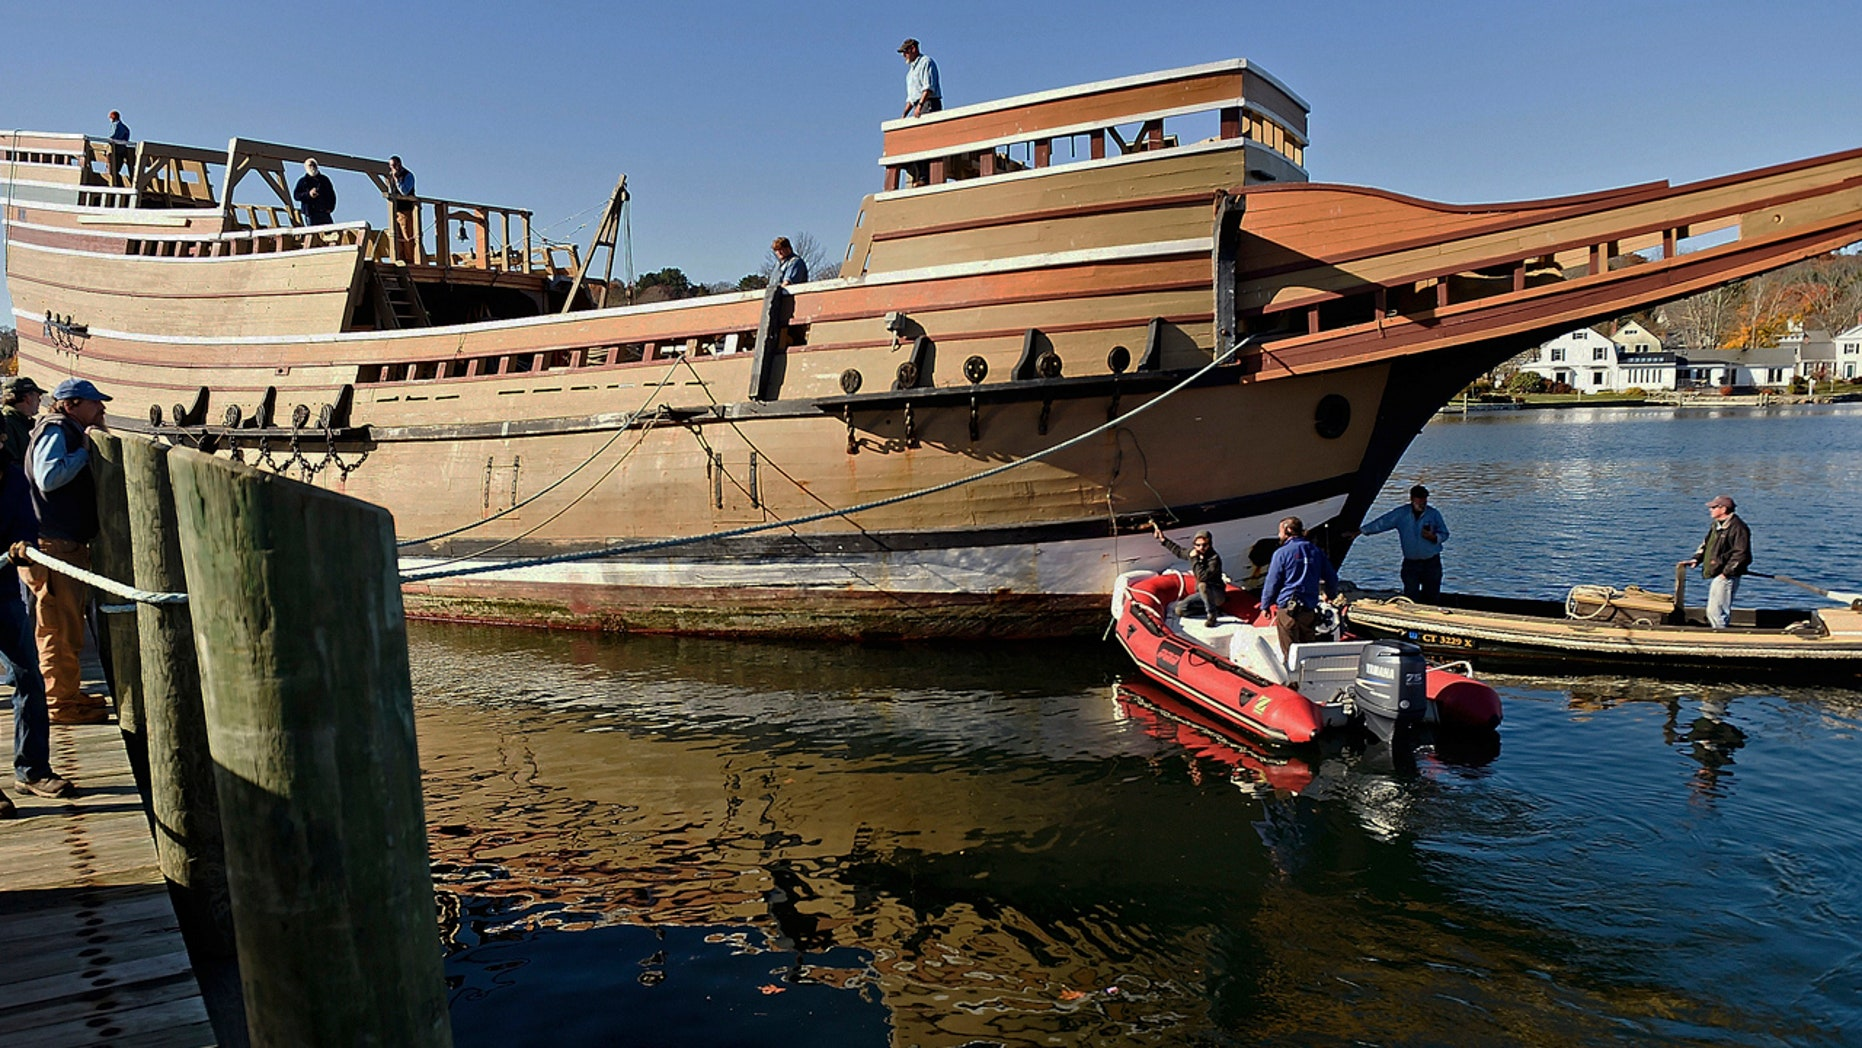 In this Nov. 18, 2016 photo, workers at Mystic Seaport move the Mayflower II from the dock into the ship-lift to be hauled out of the Mystic River at the Henry B. duPont Preservation Shipyard in Stonington, Conn.